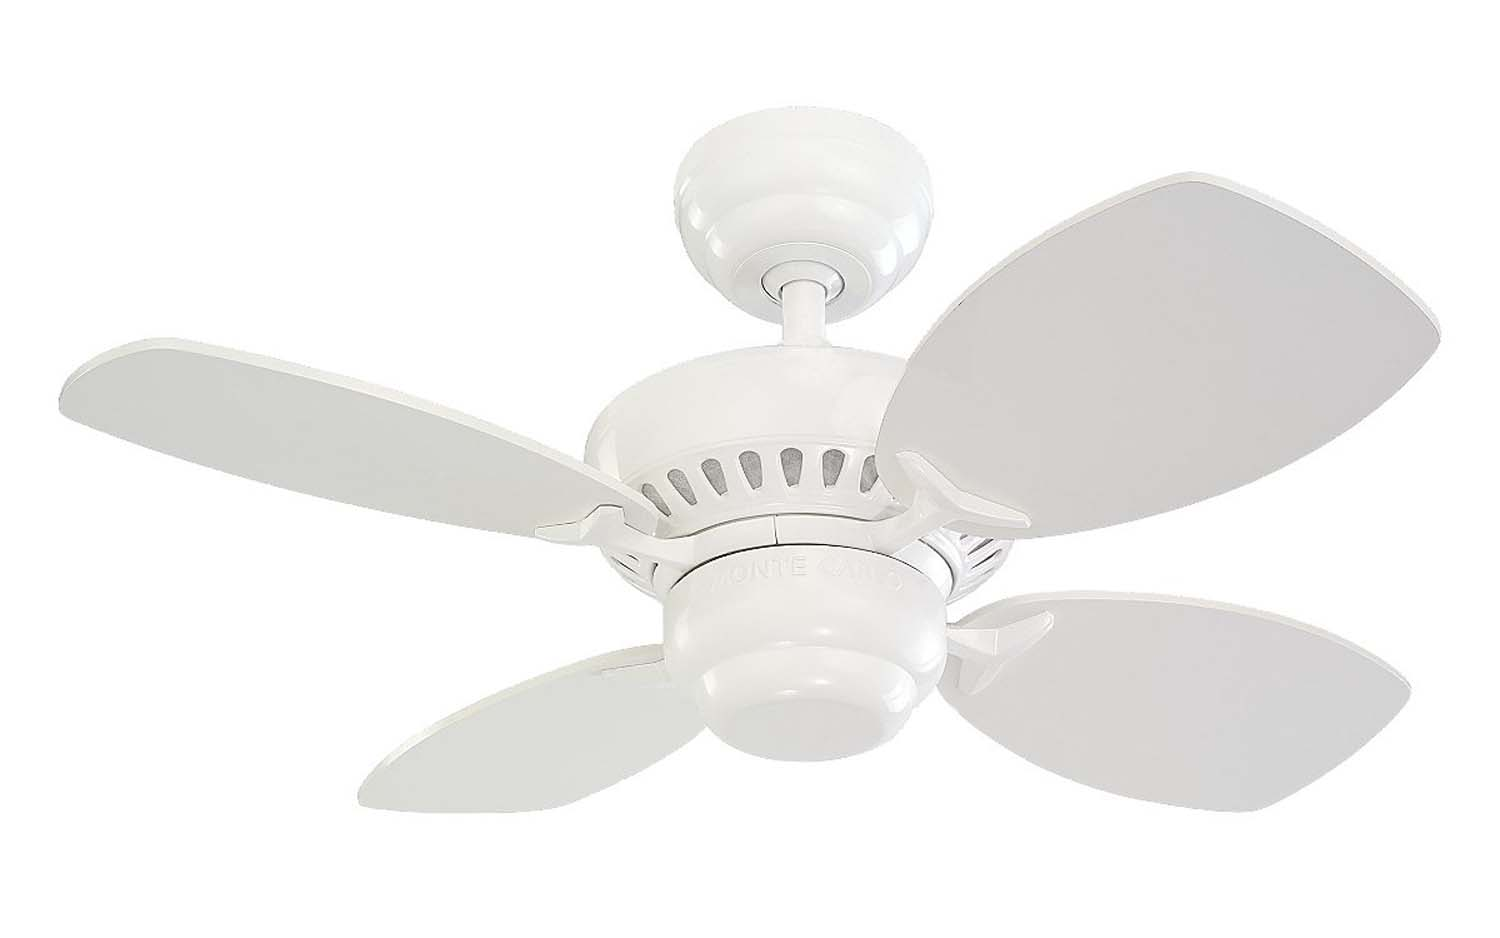 28 inchCeiling Fan from the Colony II collection by Monte Carlo 4CO28WH